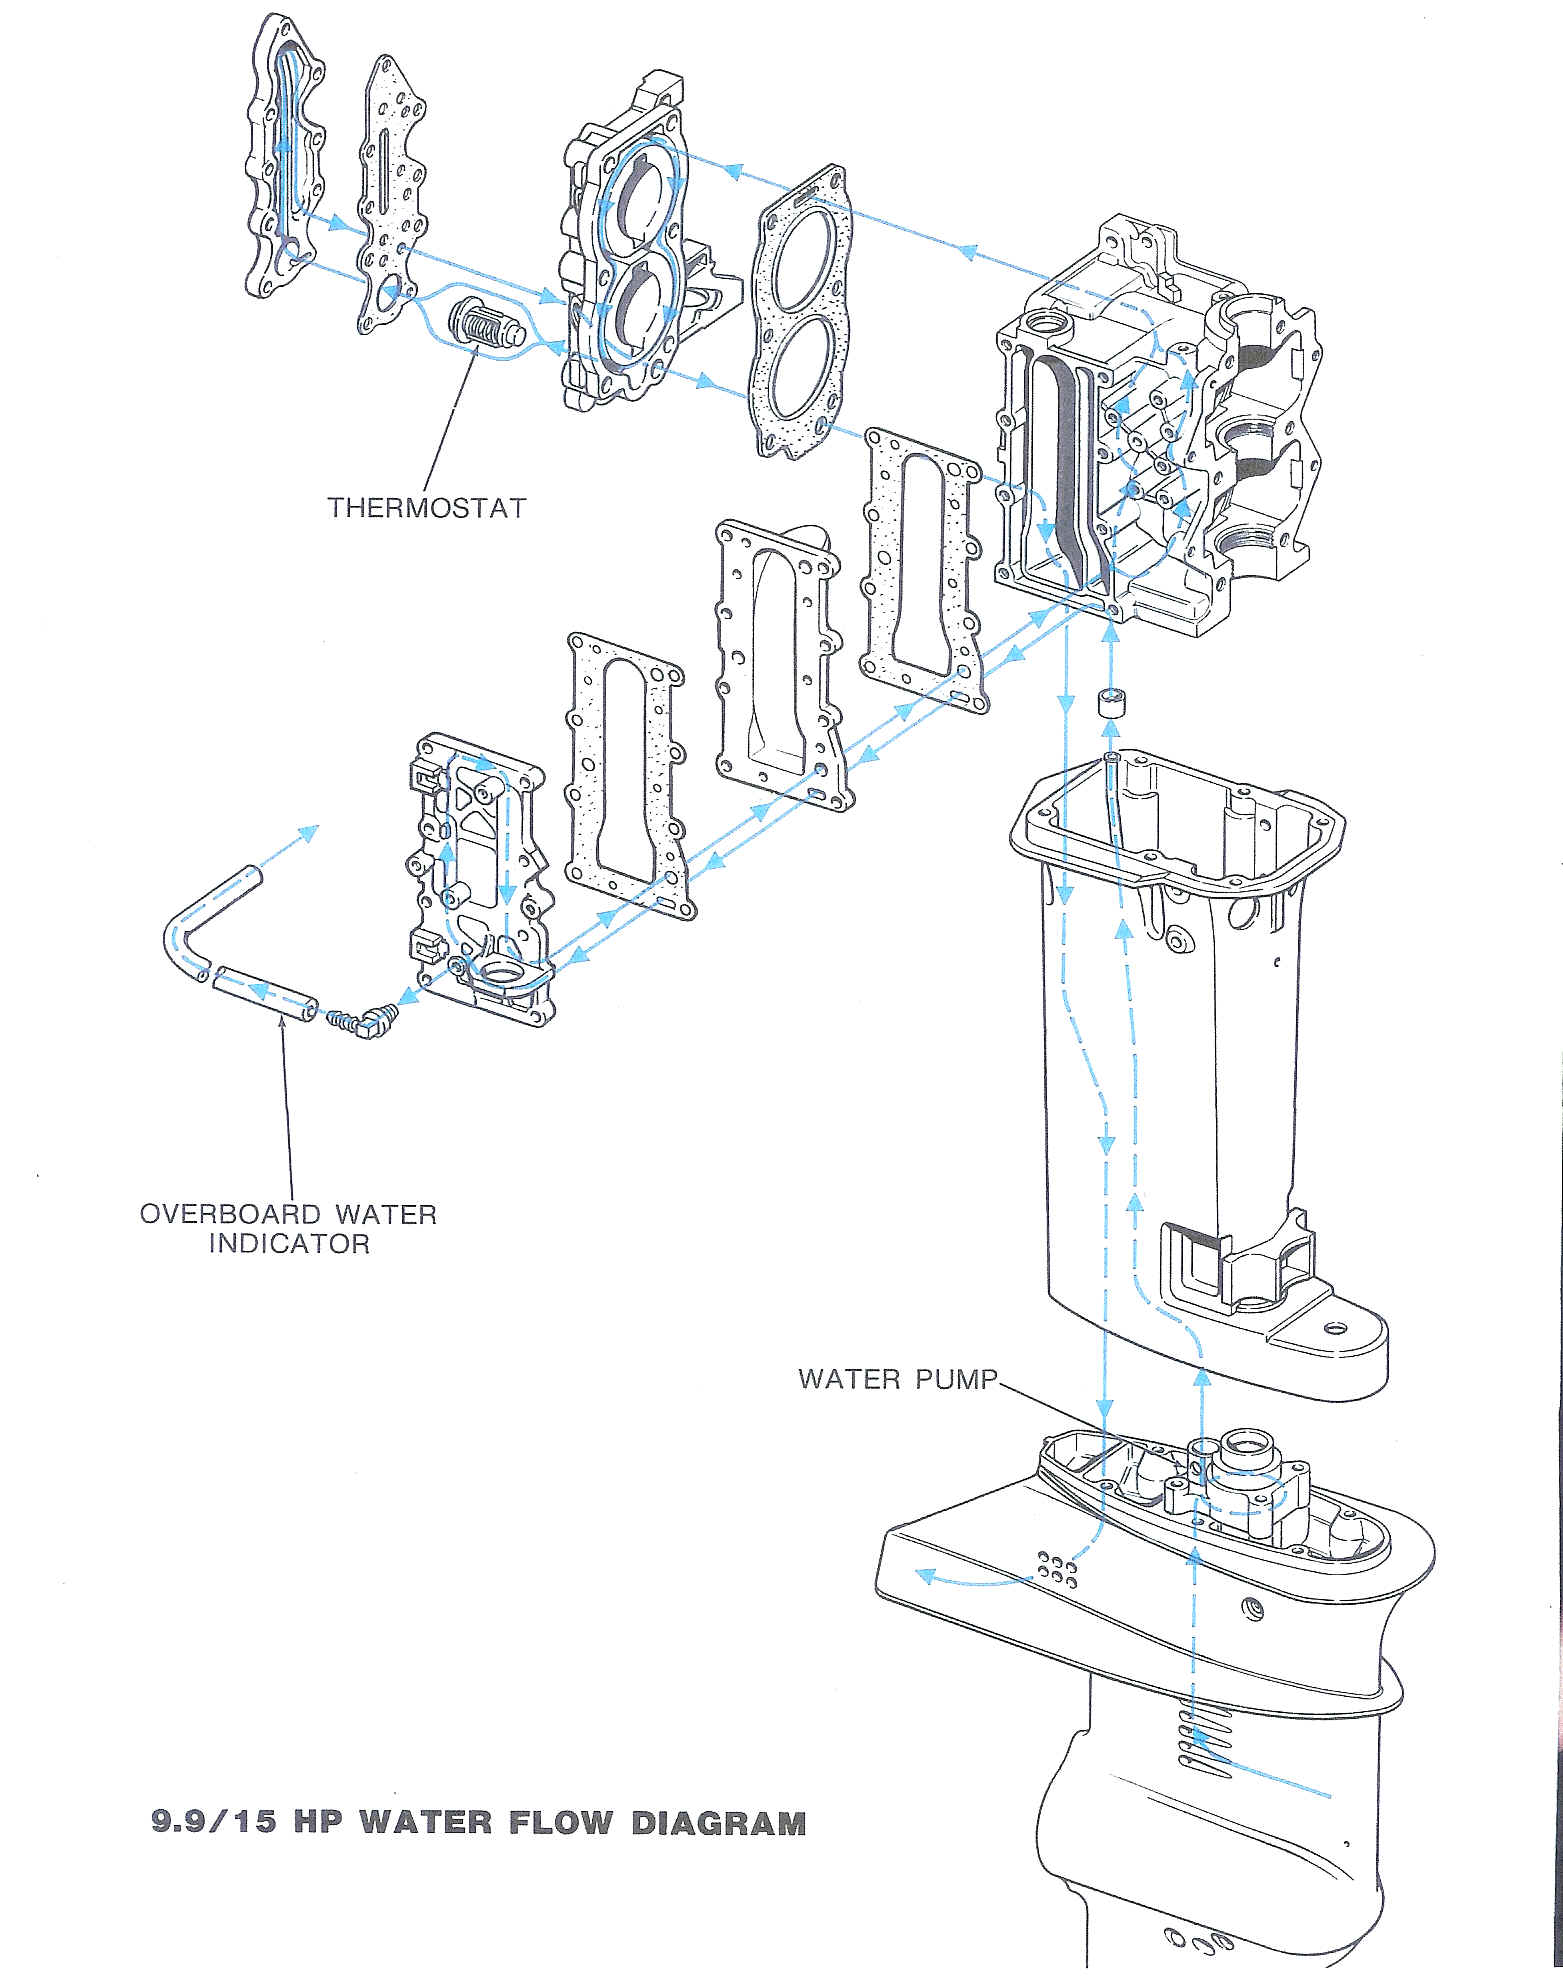 1988 johnson 9 hp outboard parts diagram wiring wiring diagram centre1988 johnson 9 hp outboard parts diagram wiring